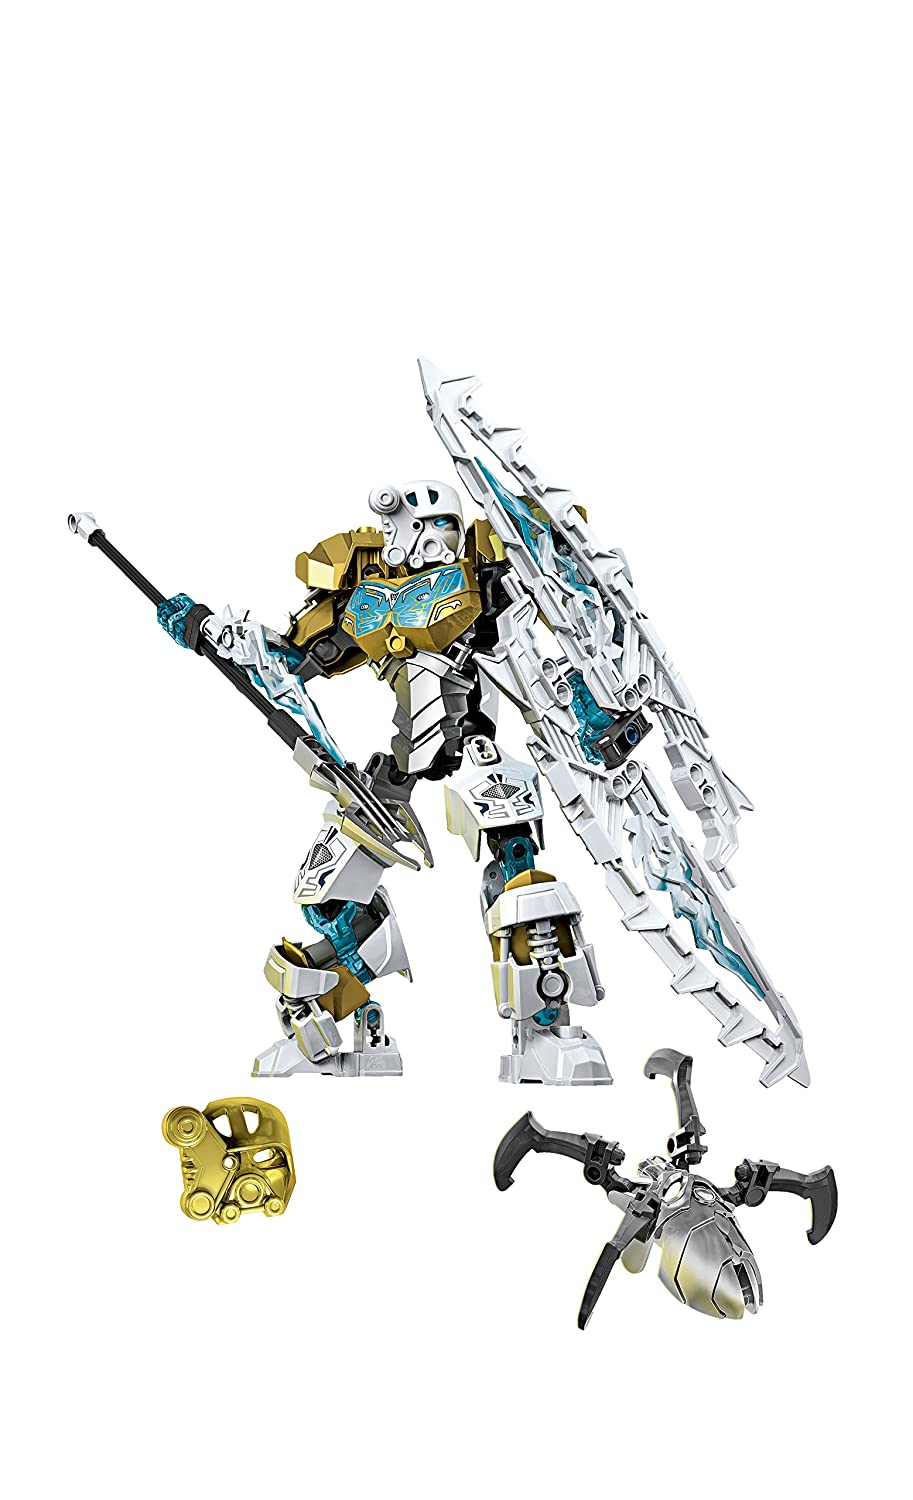 , 70788 Discontinued by manufacturer 6100300 Master of Ice Toy LEGO Bionicle Kopaka